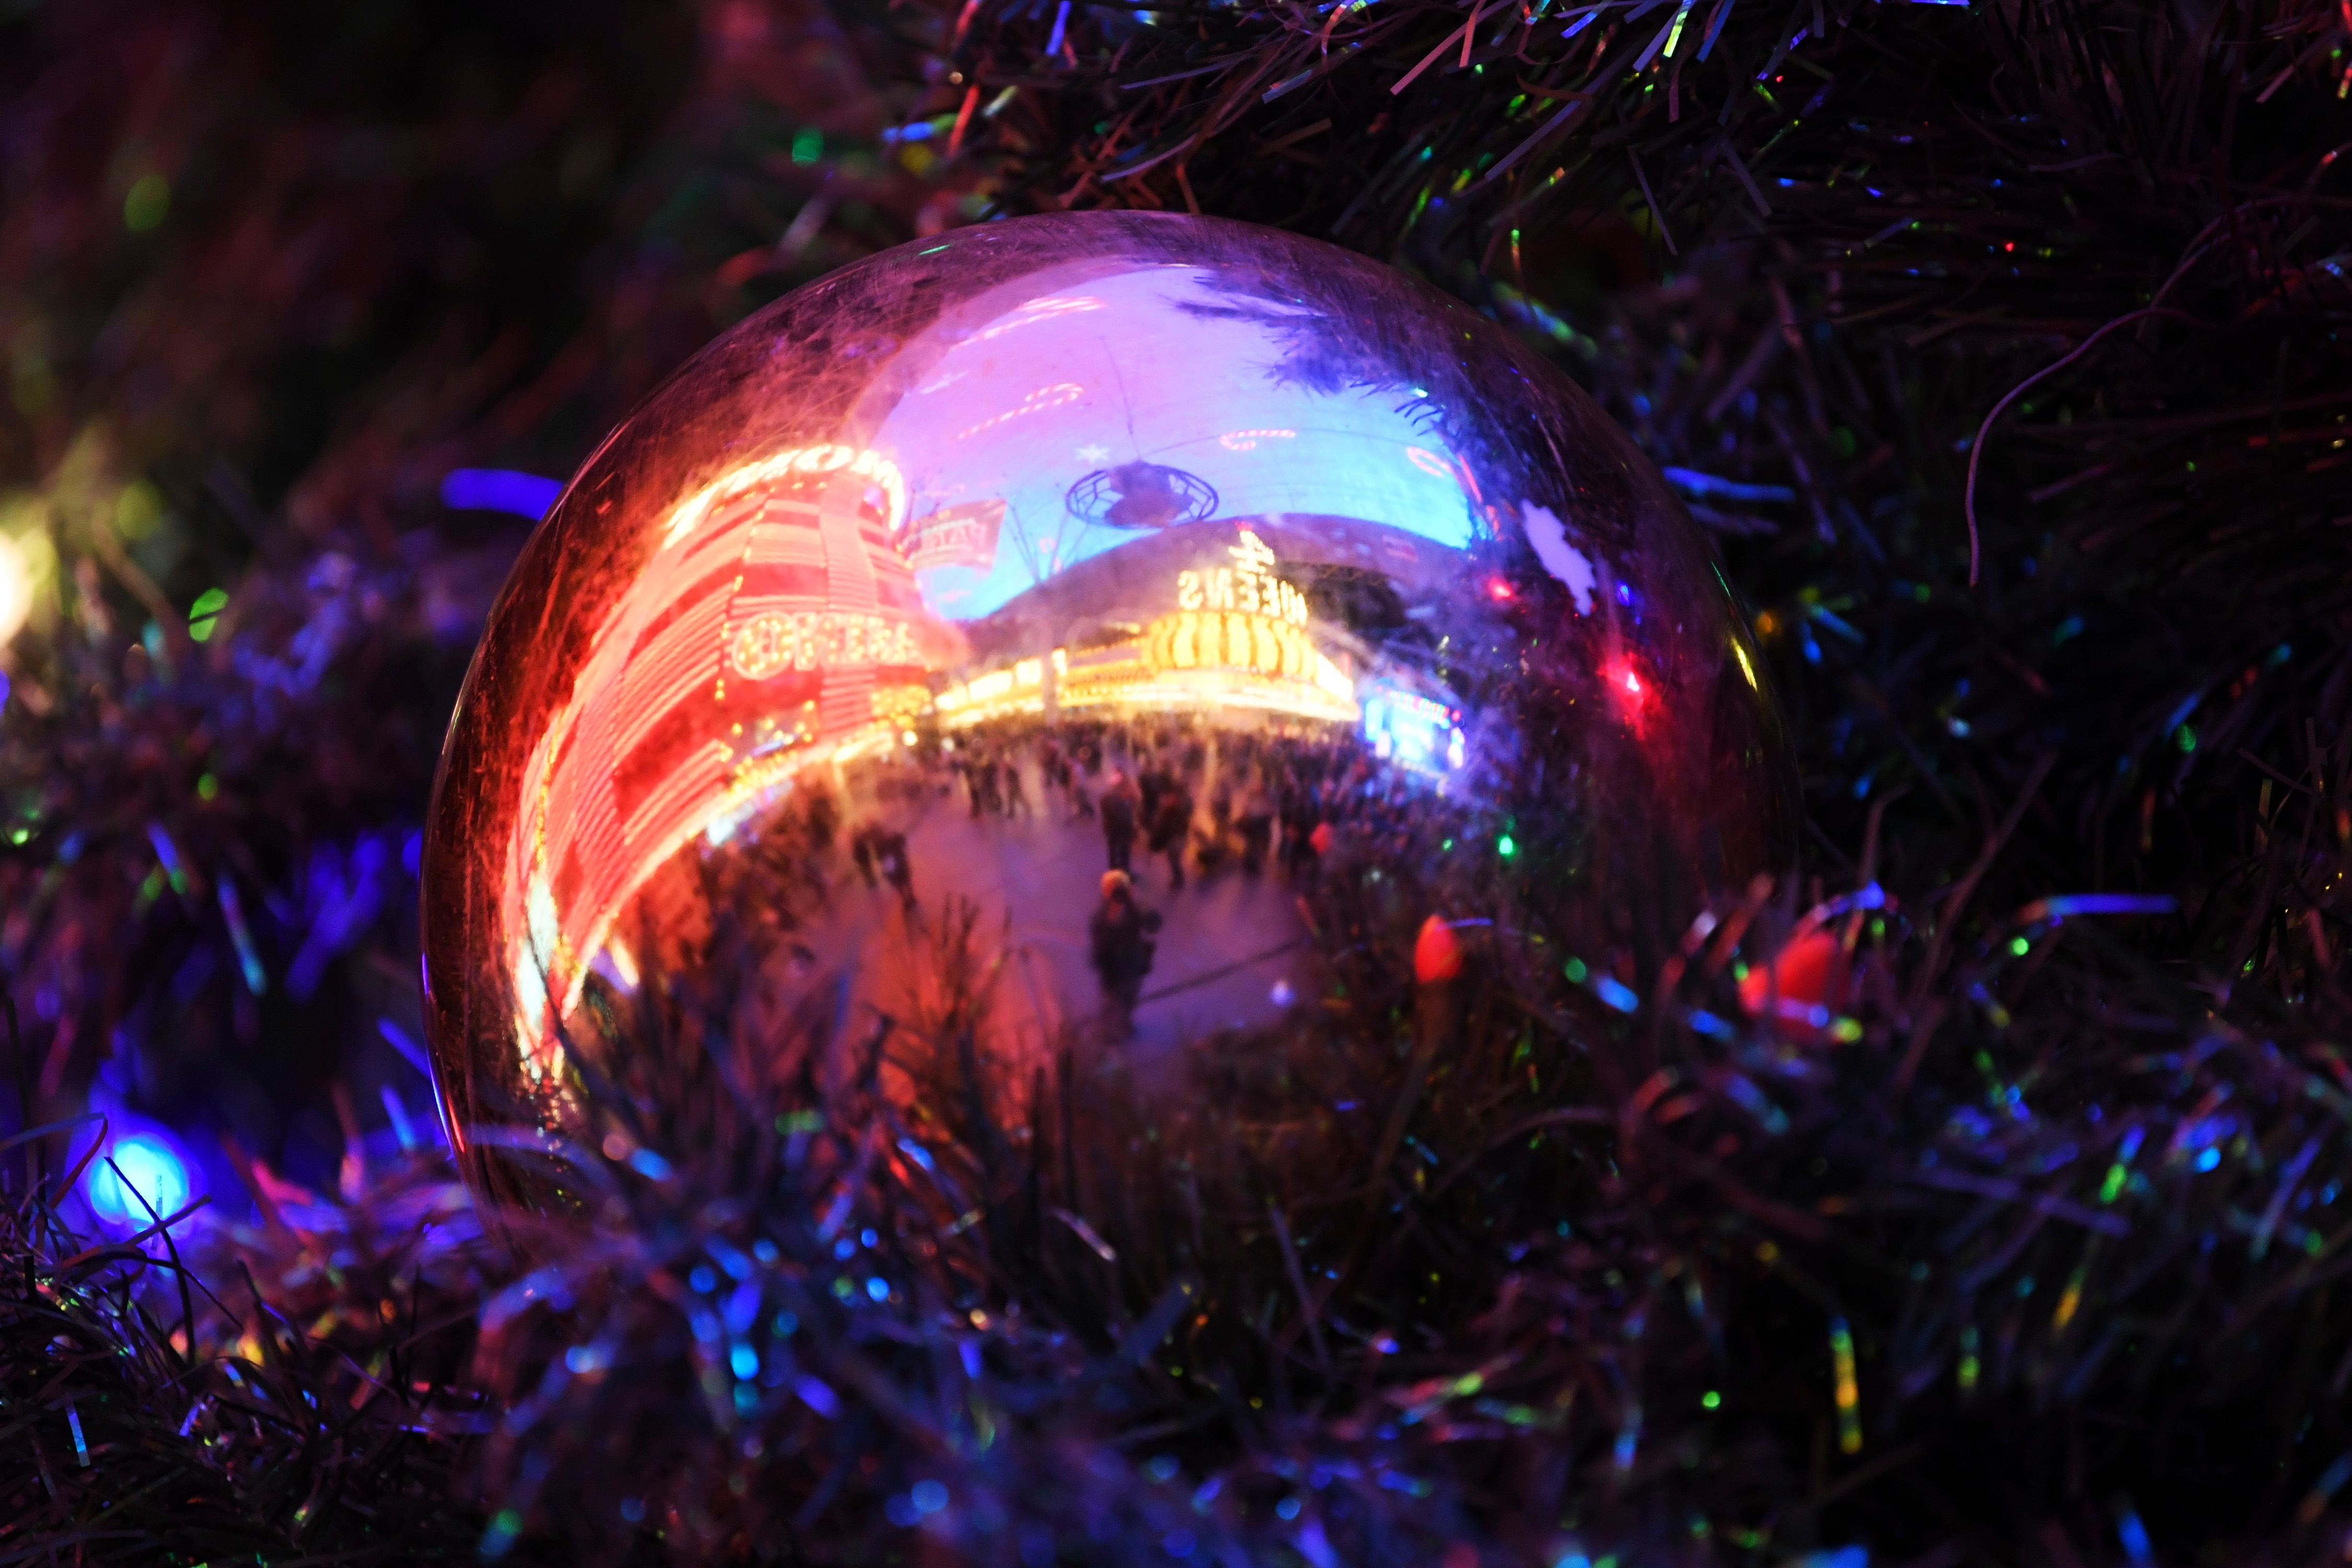 An ornament reflects the lights of the Fremont Street Experience during the annual lighting of a Christmas tree Tuesday, December 4, 2018. CREDIT: Sam Morris/Las Vegas News Bureau